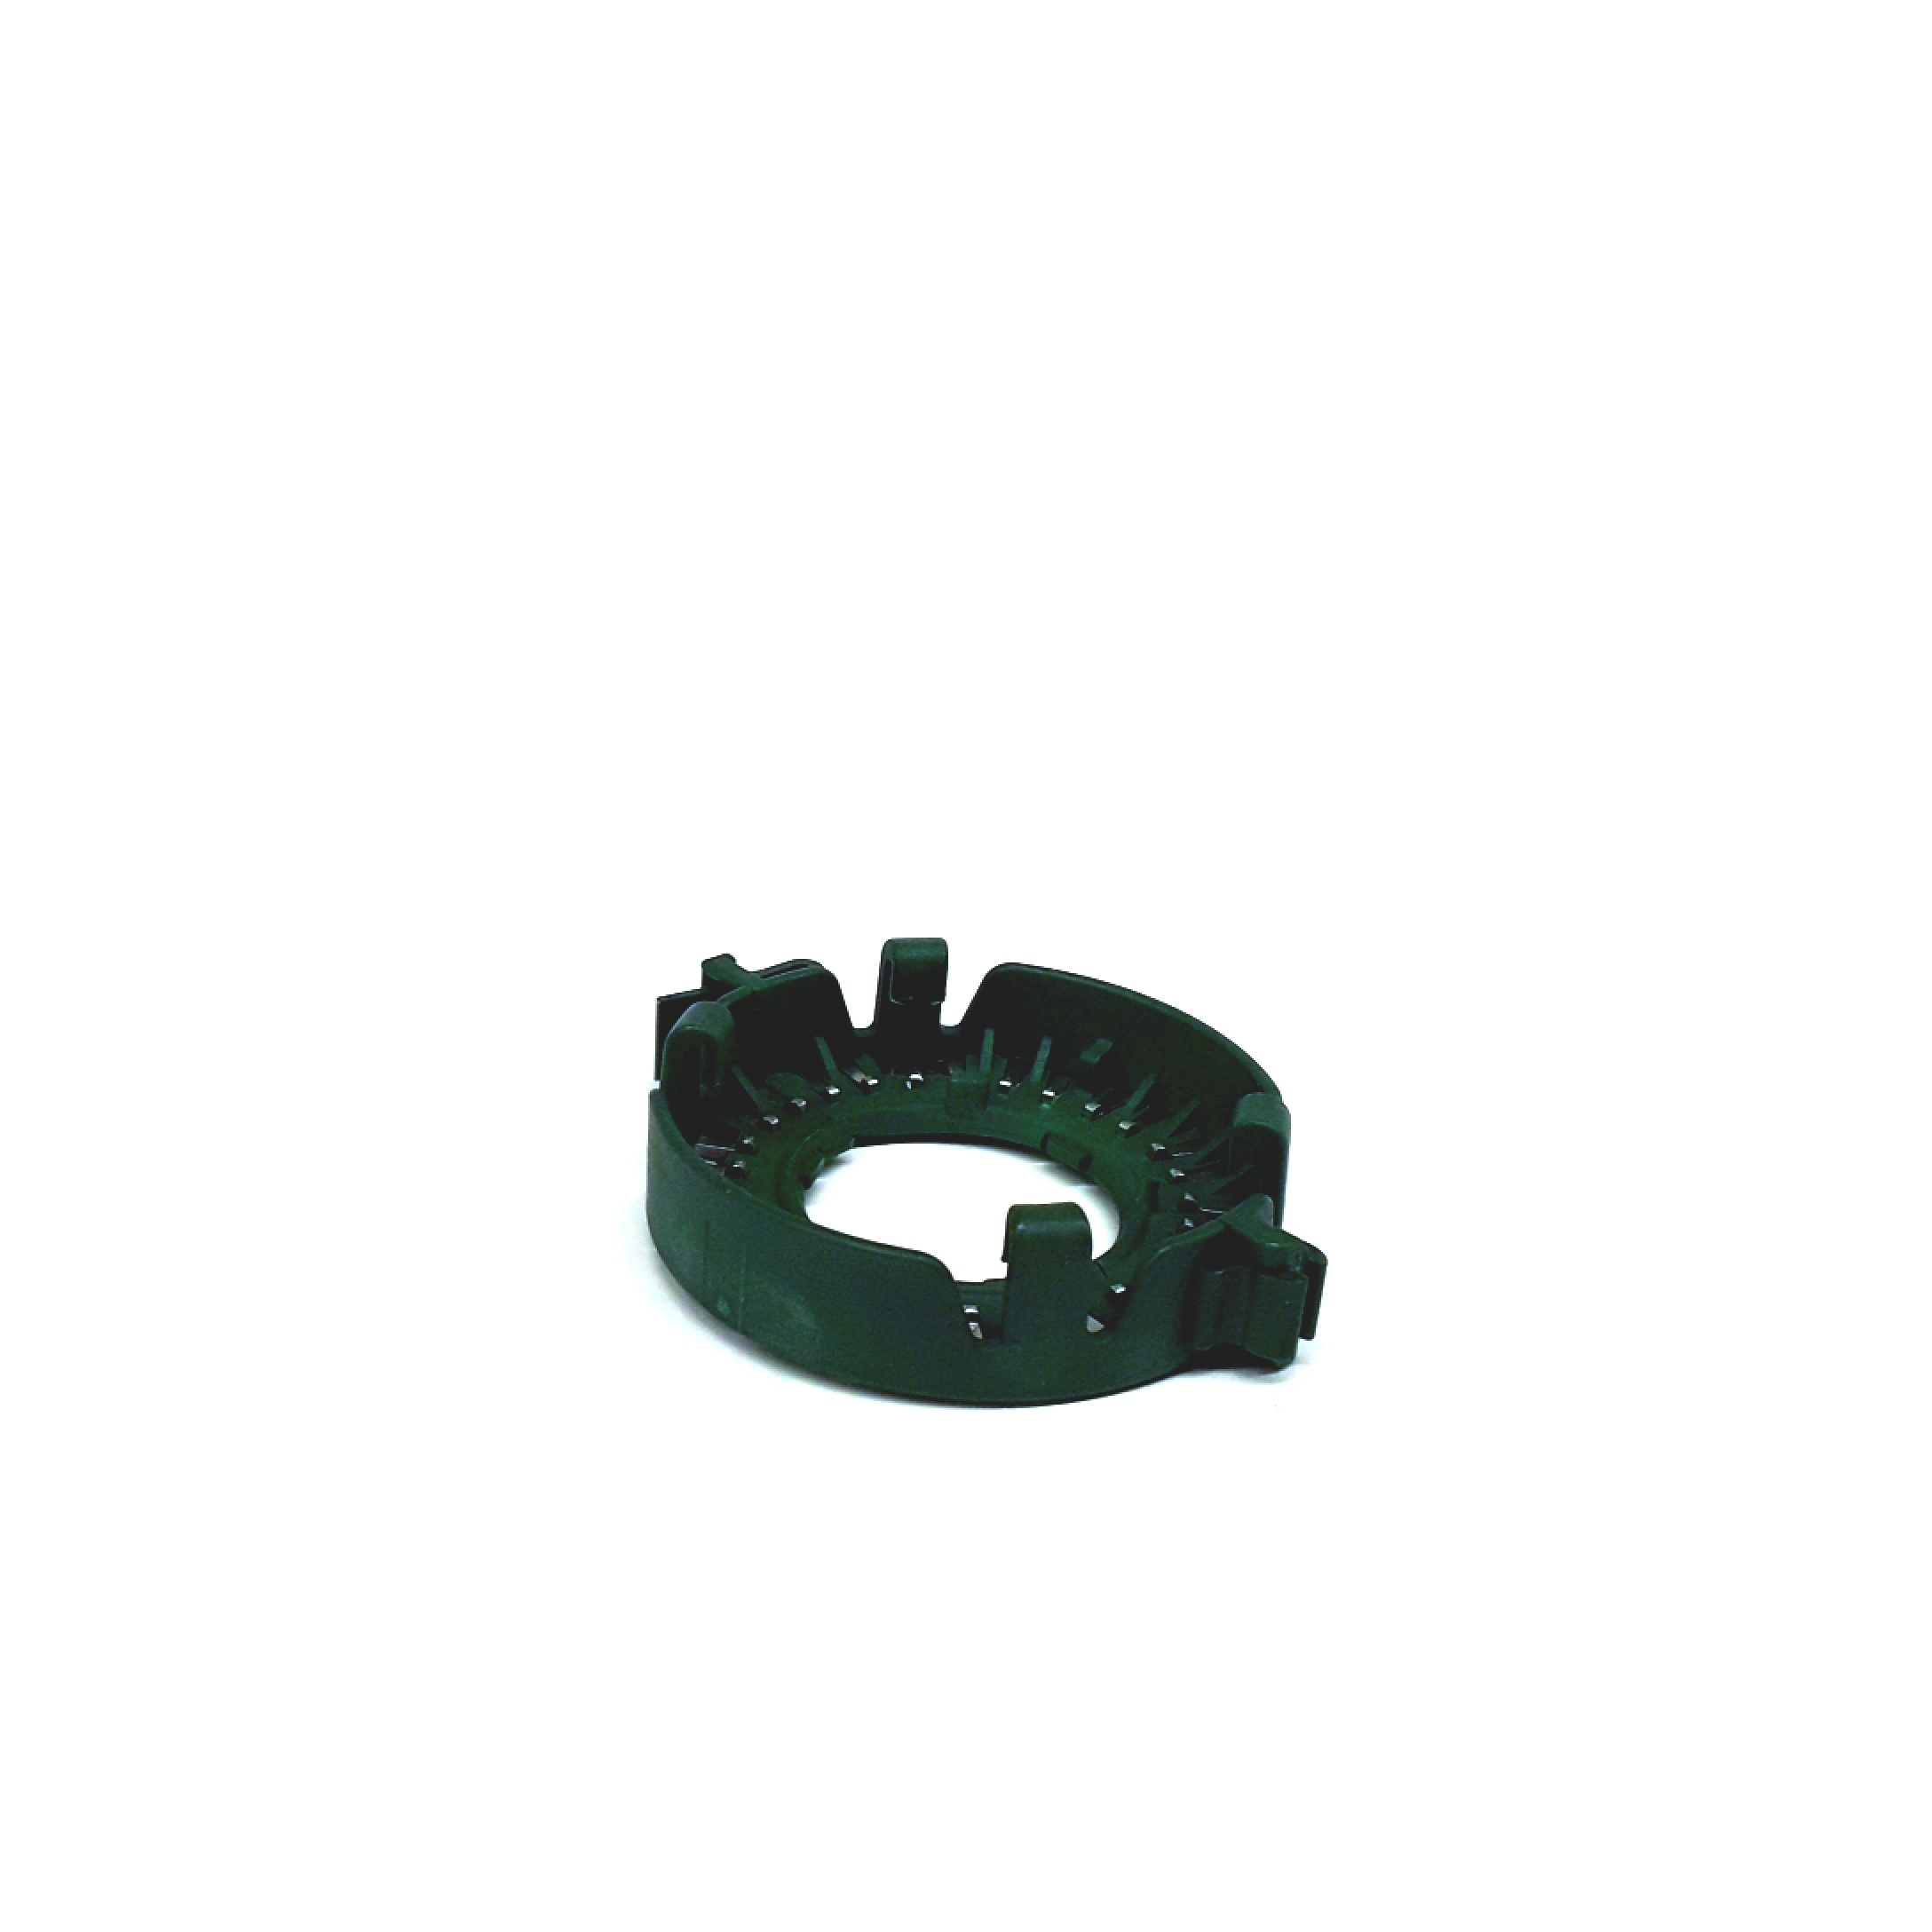 8p0941621 Audi Retaining Ring For Gas Discharge Bulb